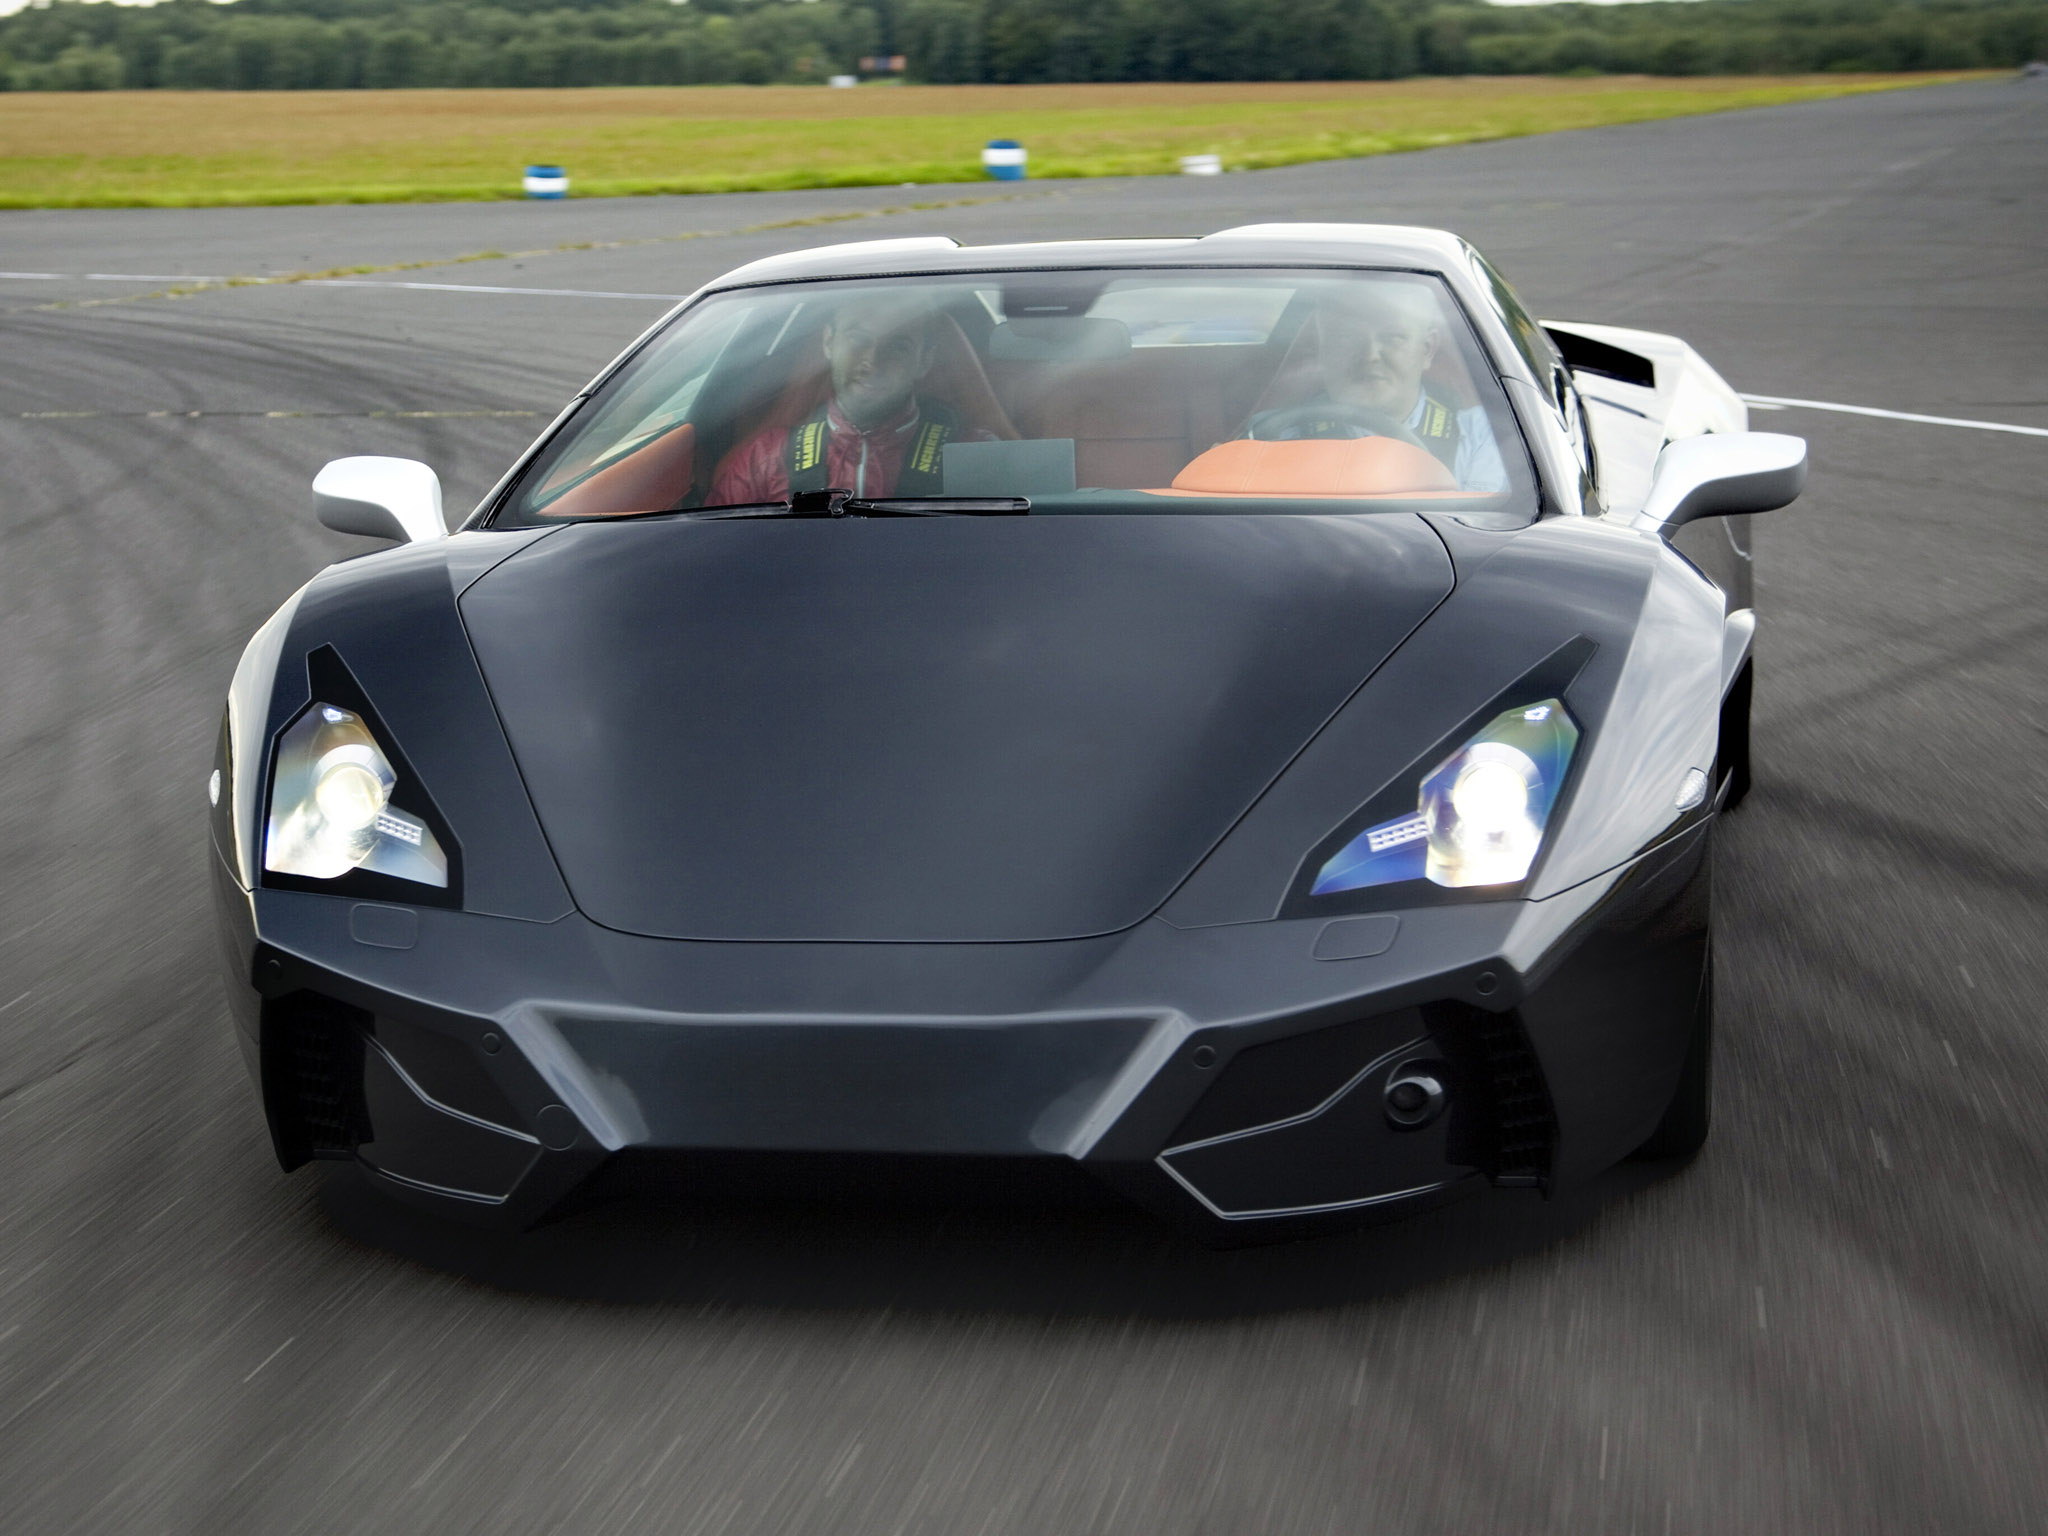 2012 Arrinera Venocara Supercar Concept - specifications, photo ...